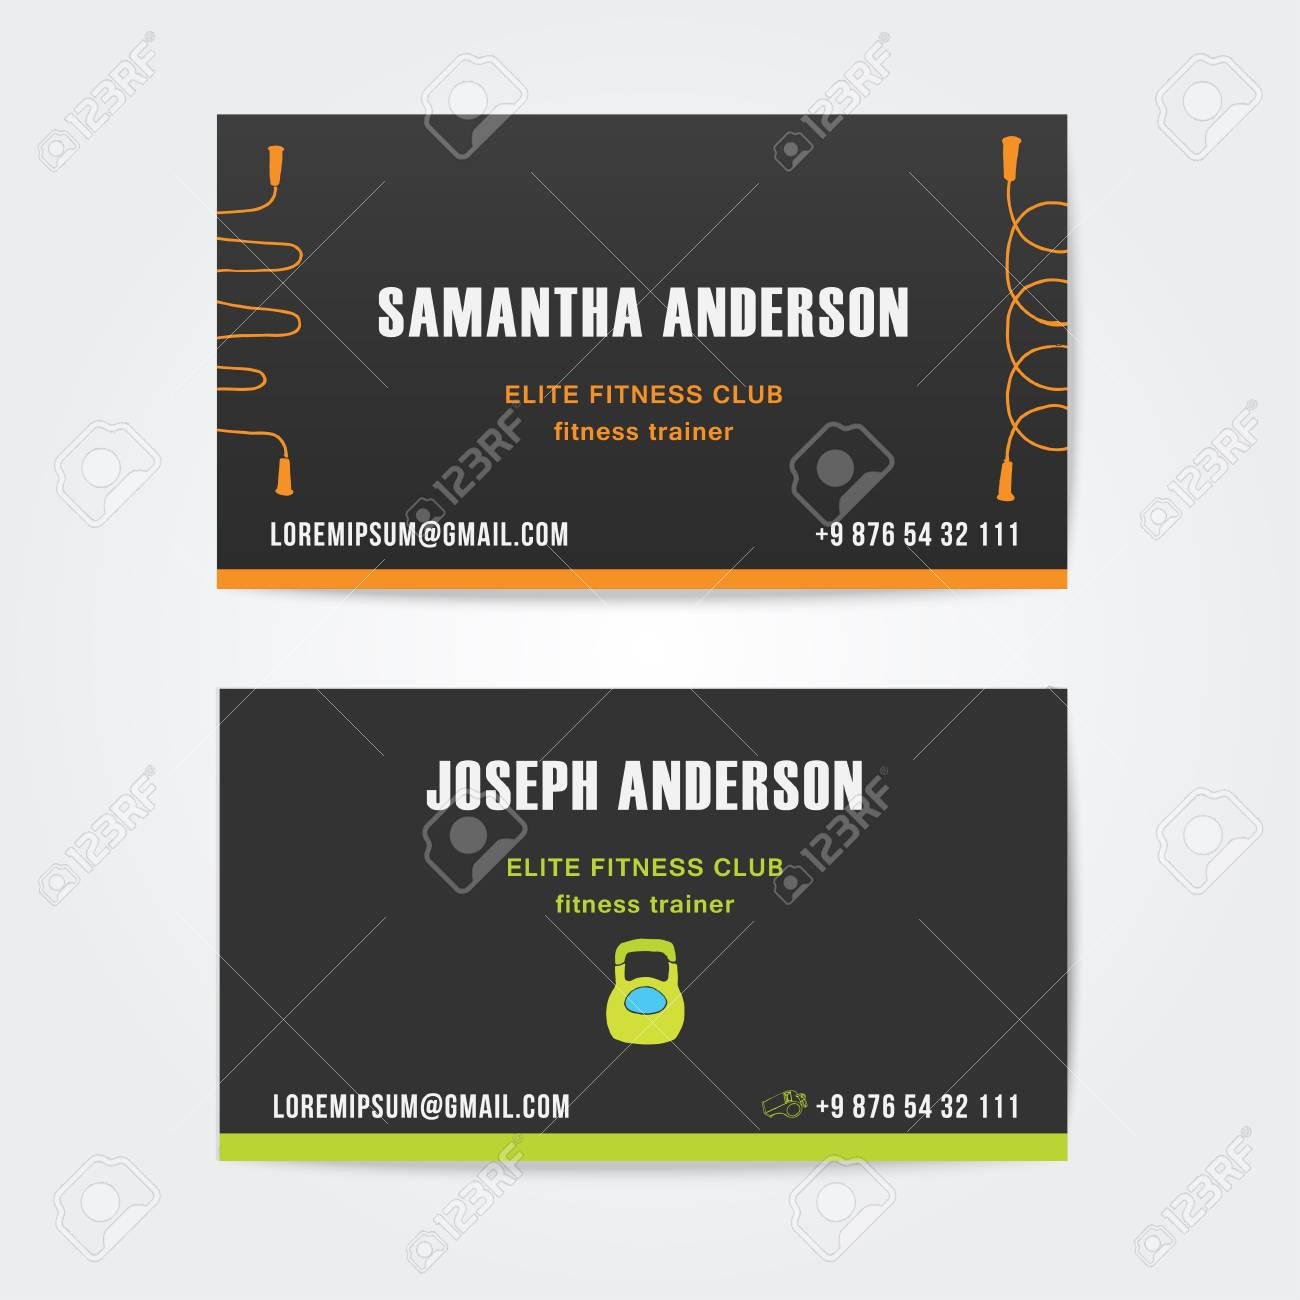 Design Business Cards For Gym And Fitness, Vector Royalty Free ...